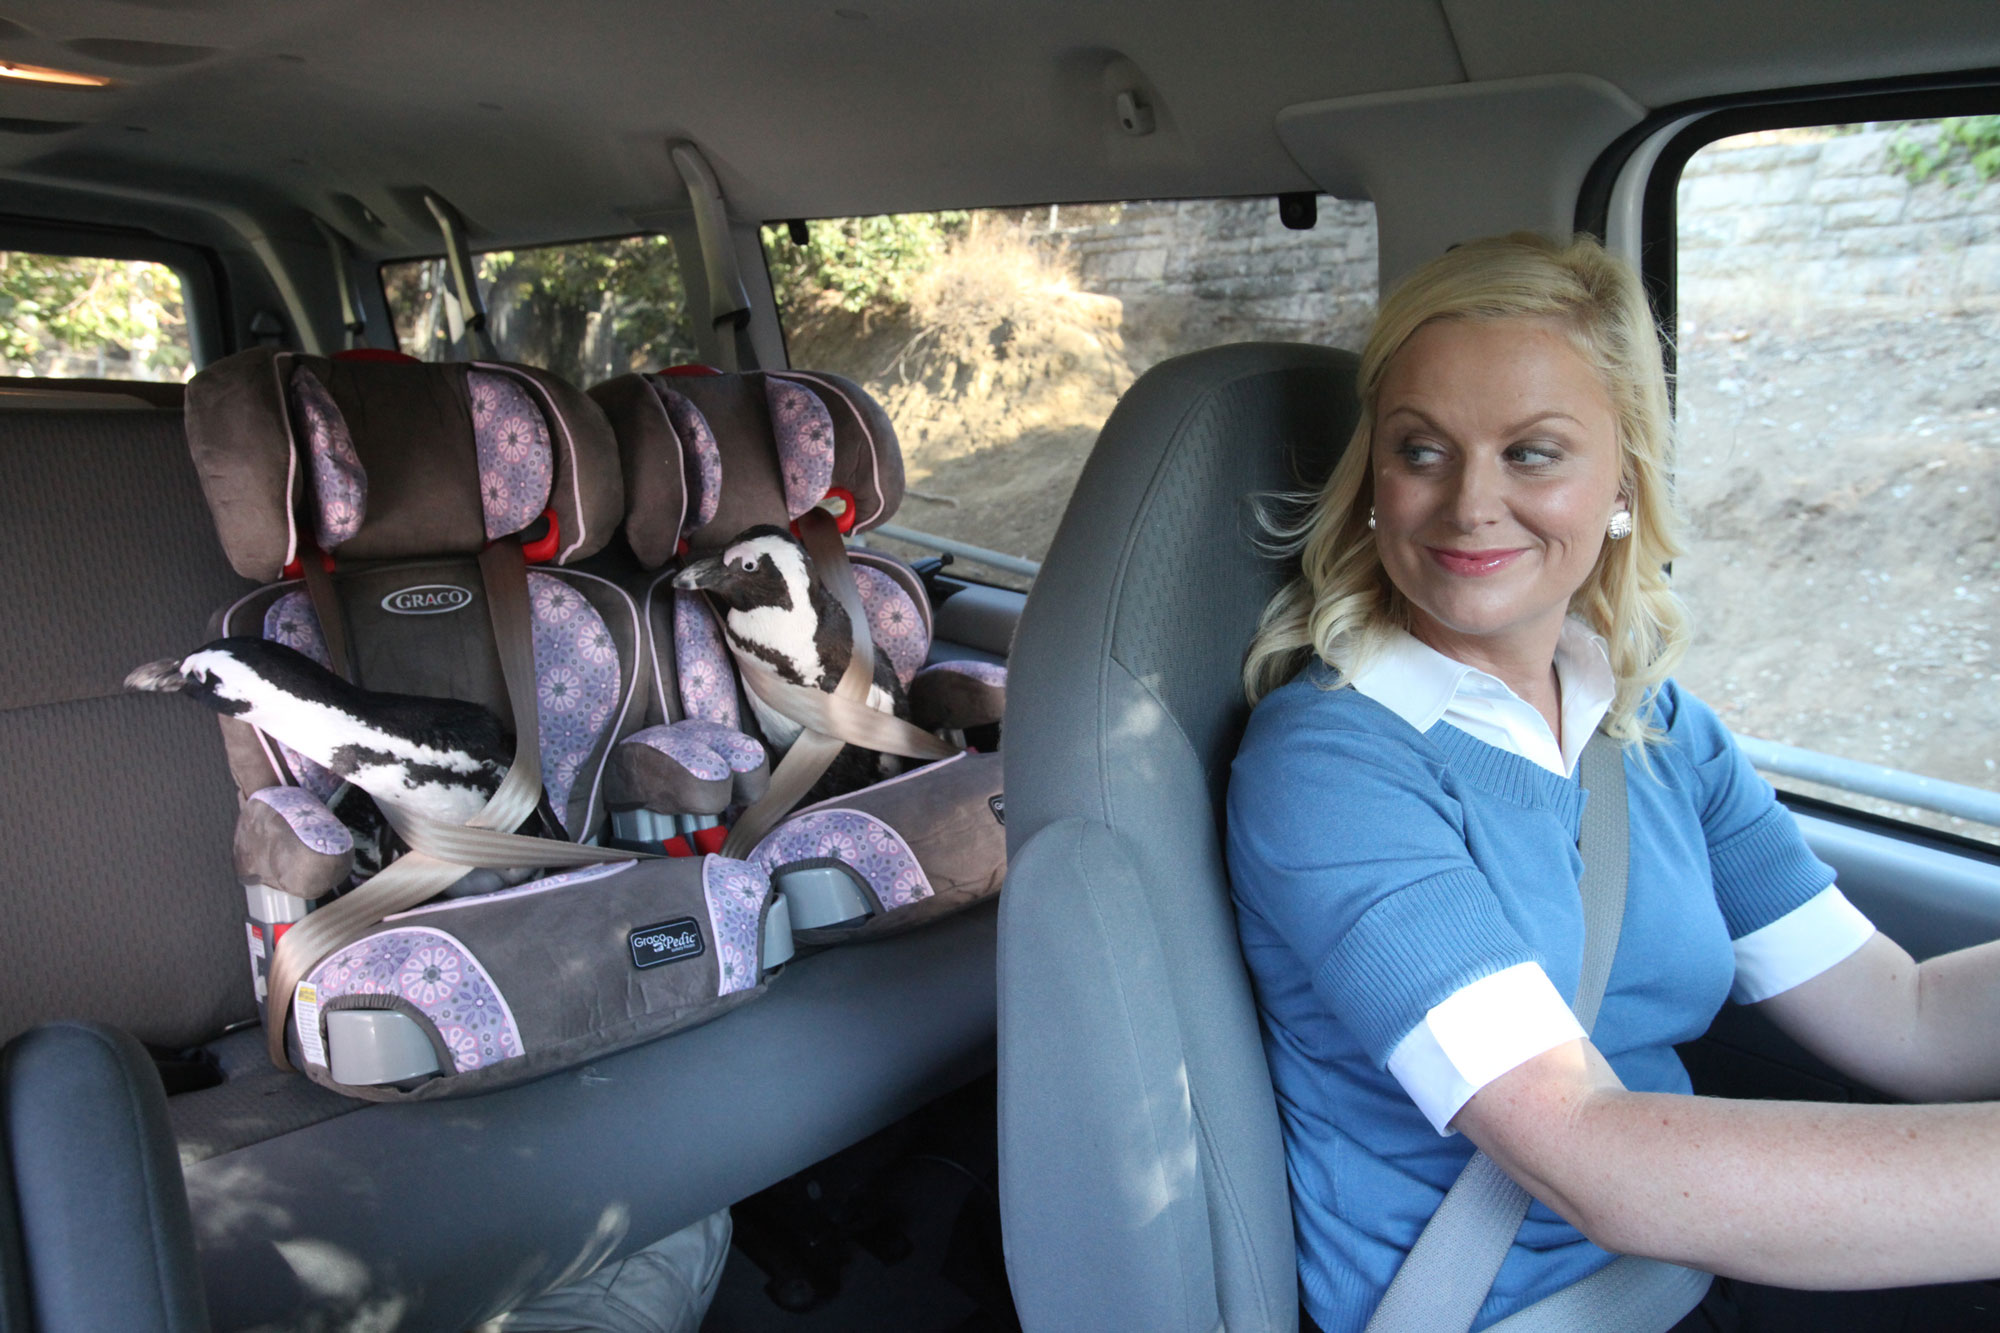 Amy Poehler picks up some penguins in 'Pawnee Zoo'